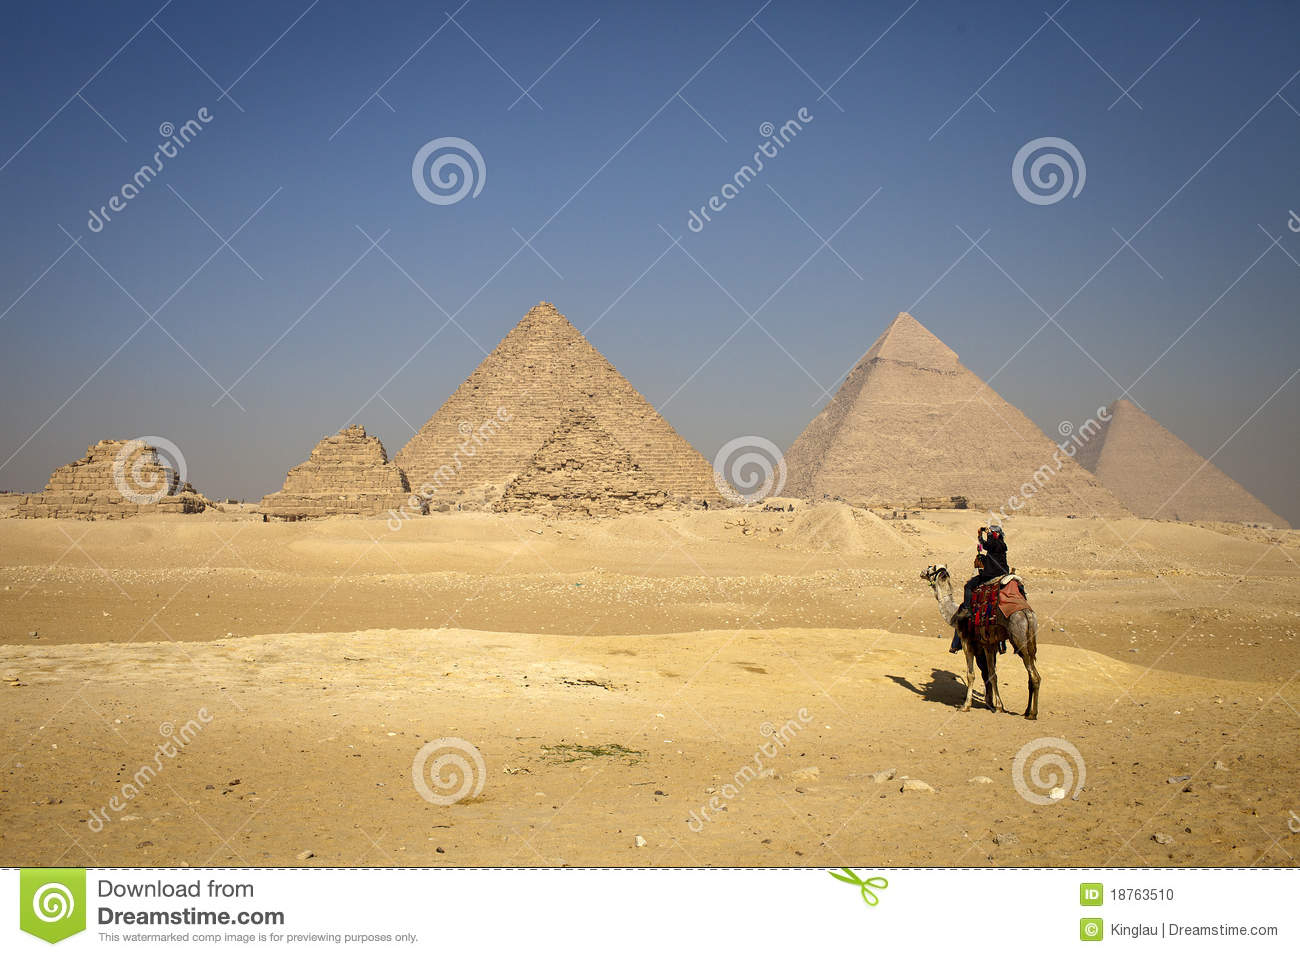 Pyramids And Alone Camel, Lonely People Stock Photo - Image: 18763510